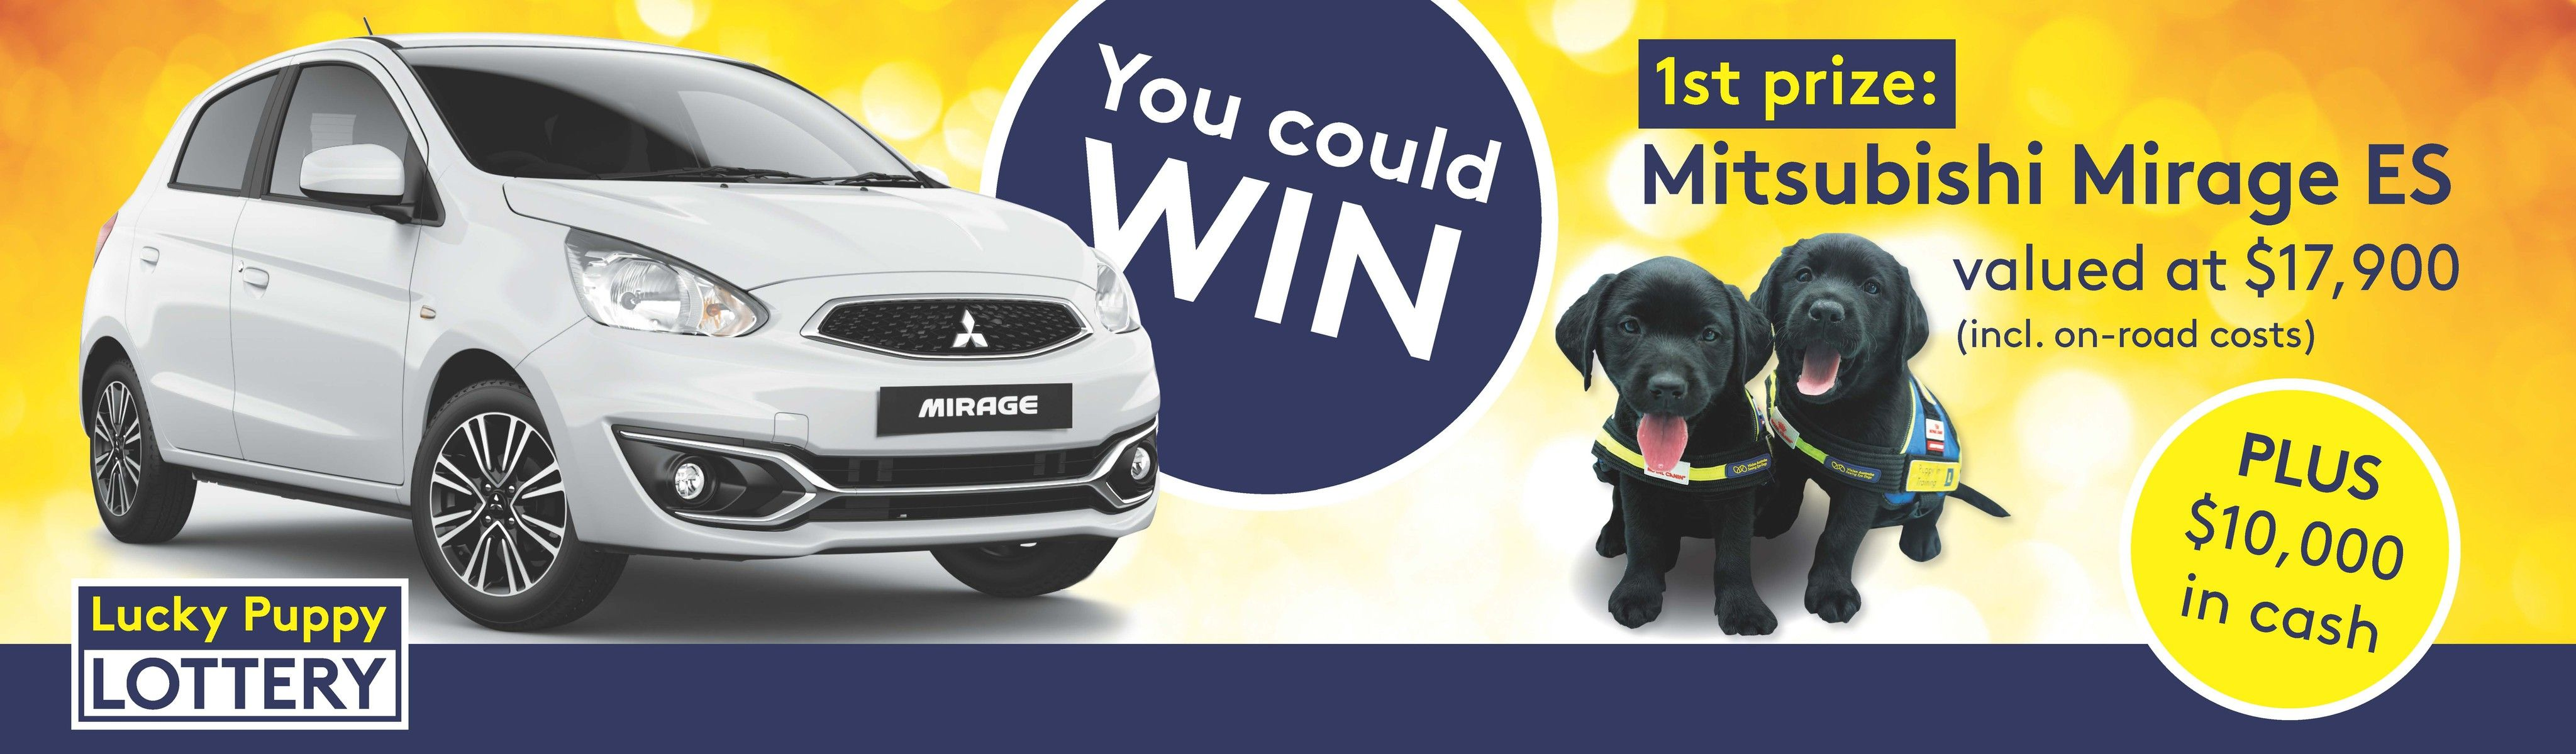 You could win 1st prize Mitsubishi Mirage ES valued at $17,900, plus $10,000 in cash